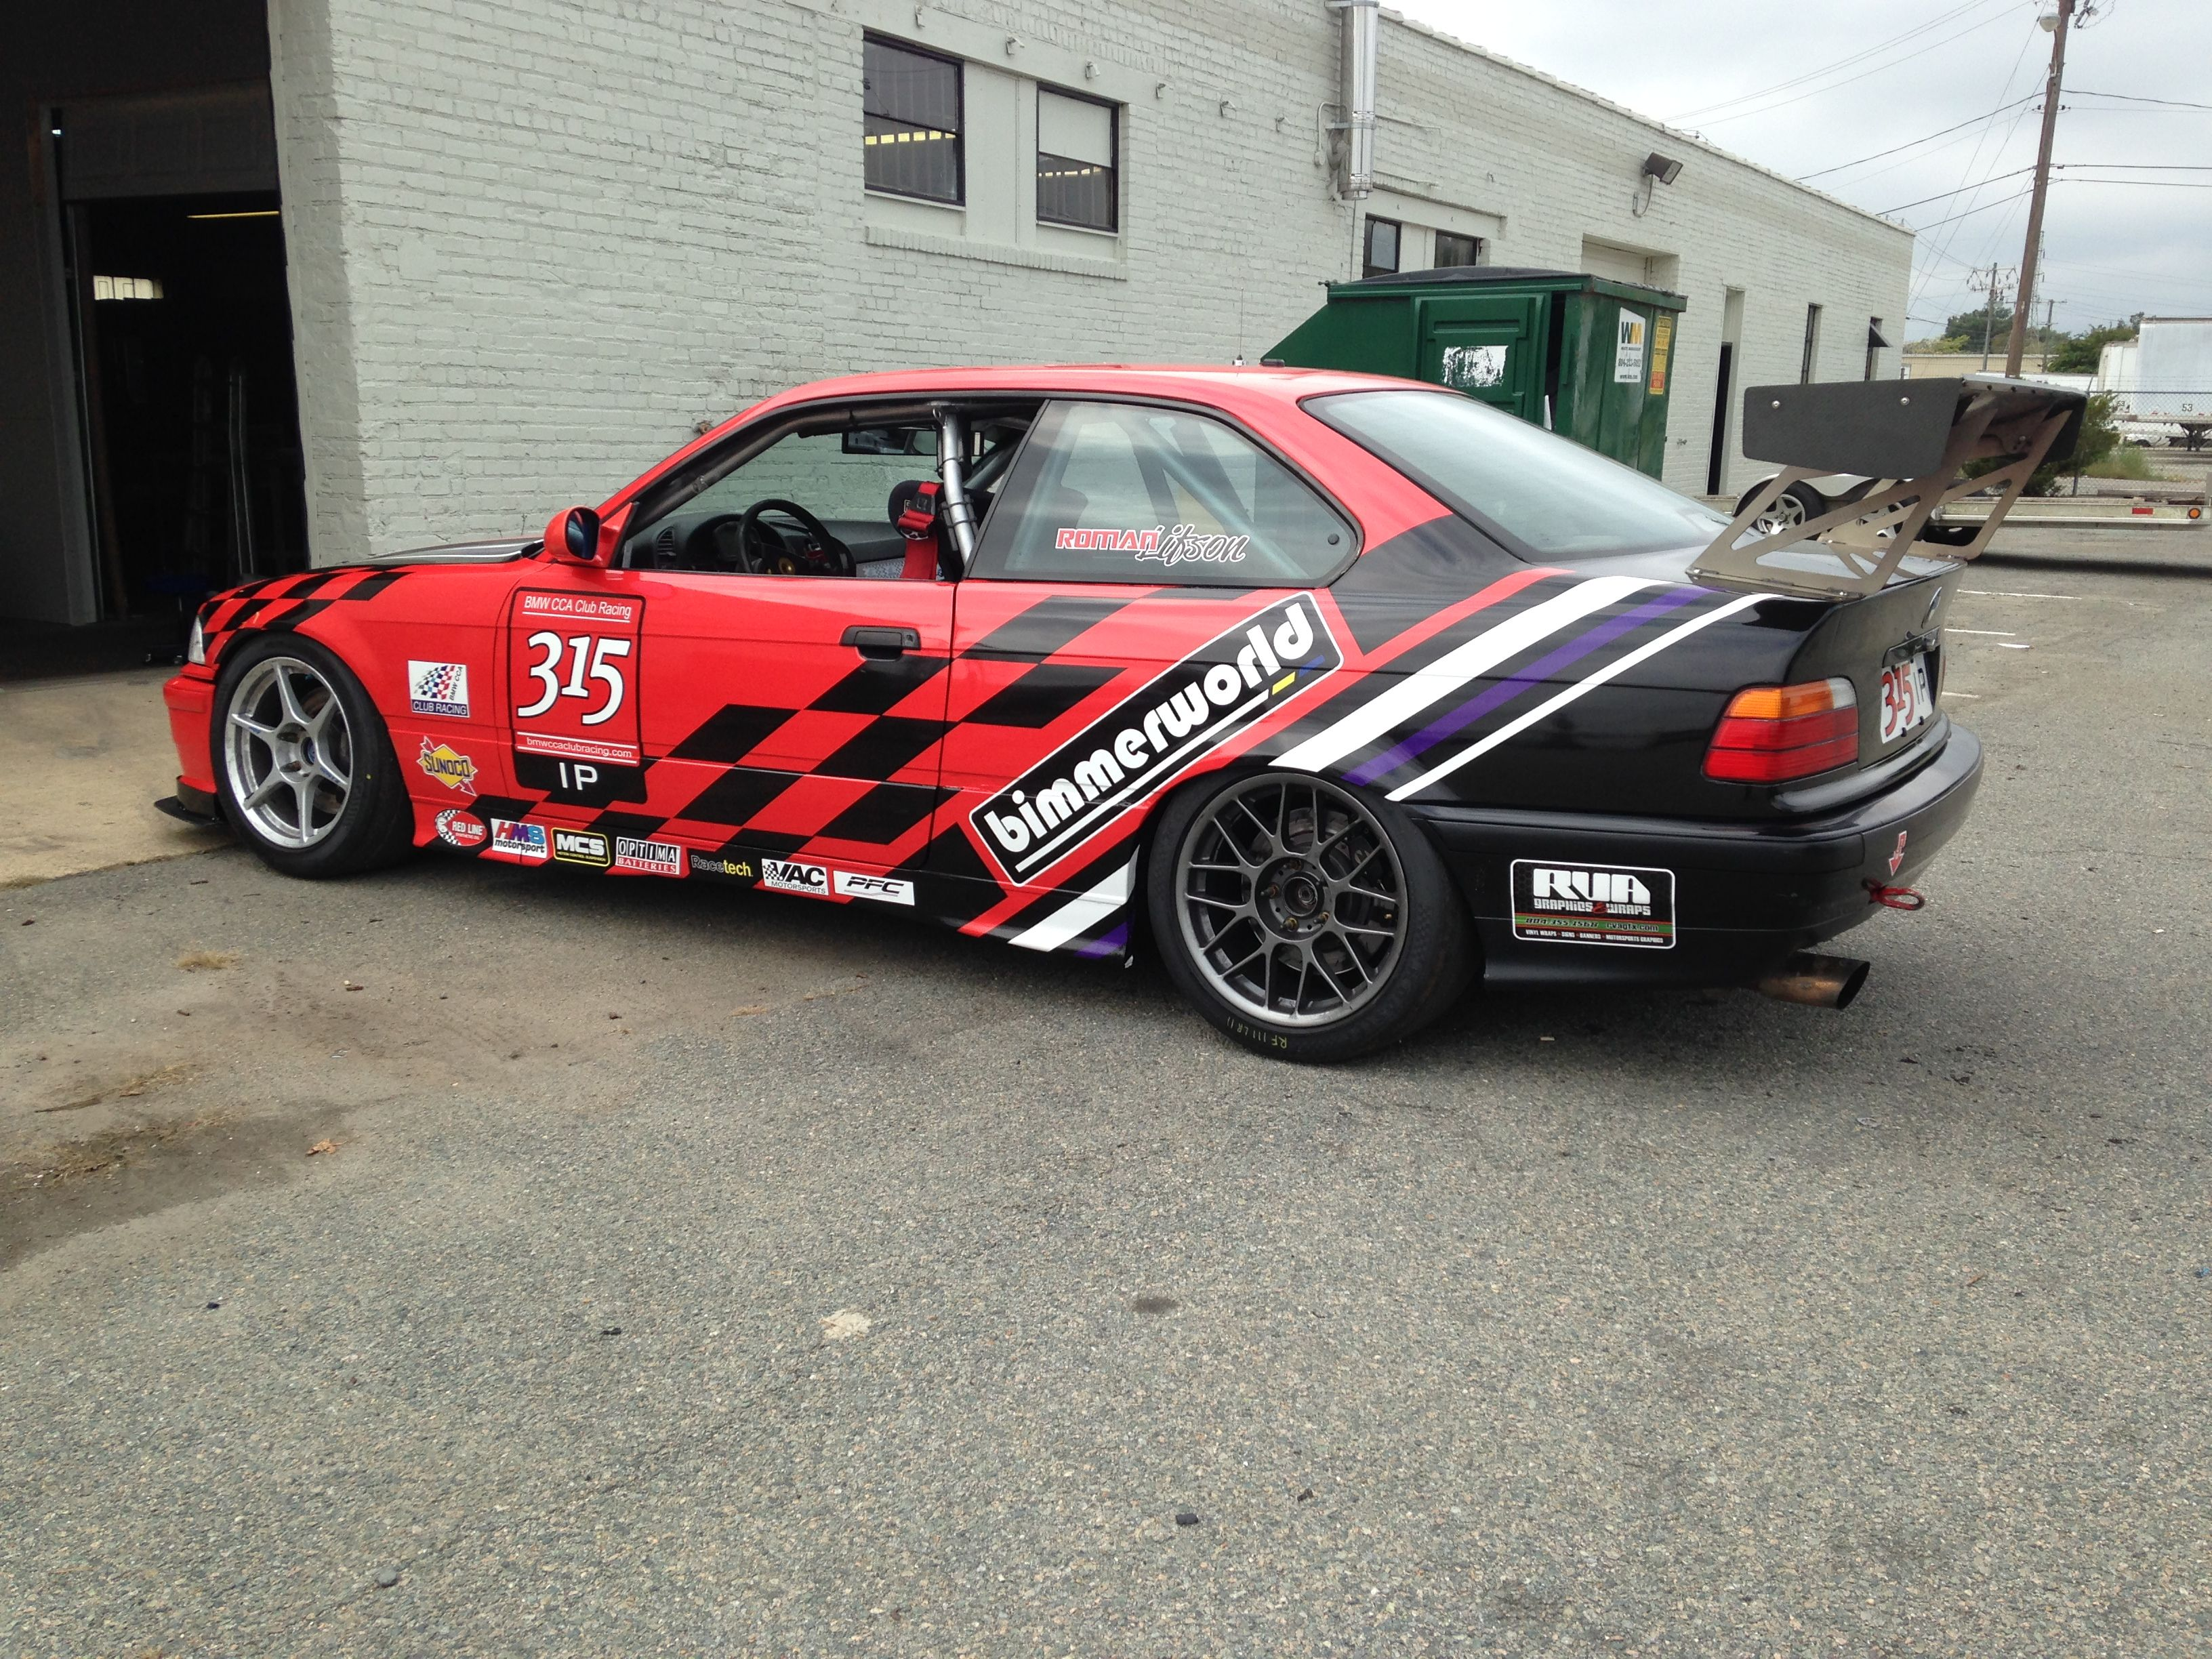 Roadrace M BMW Vinyl Wrap Designed And Installed By Robert - Vinyl decals for race carsbmw race car wraps by graphios